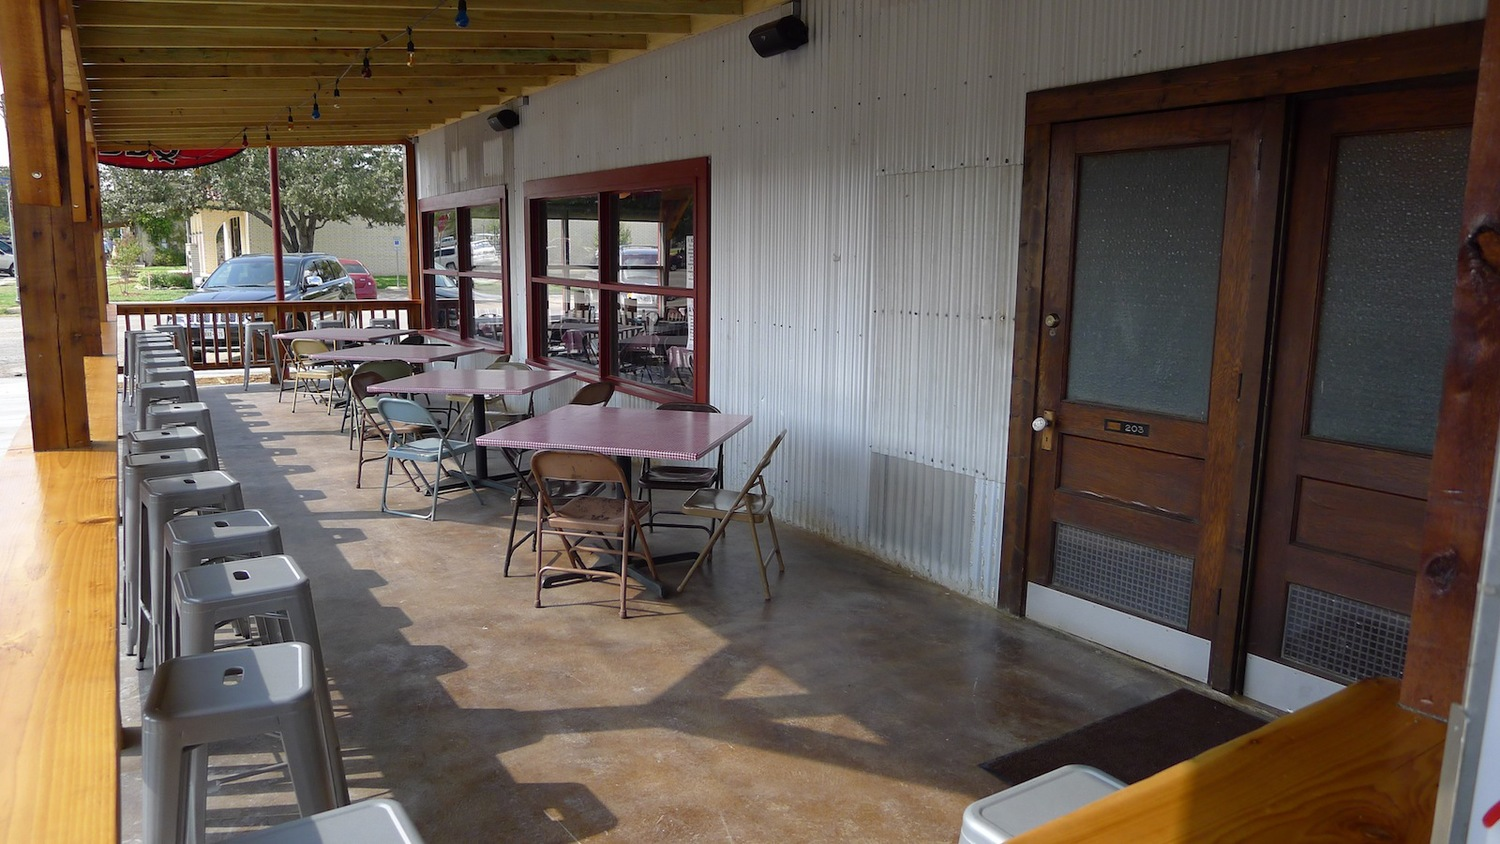 The front porch area at Old 300 BBQ